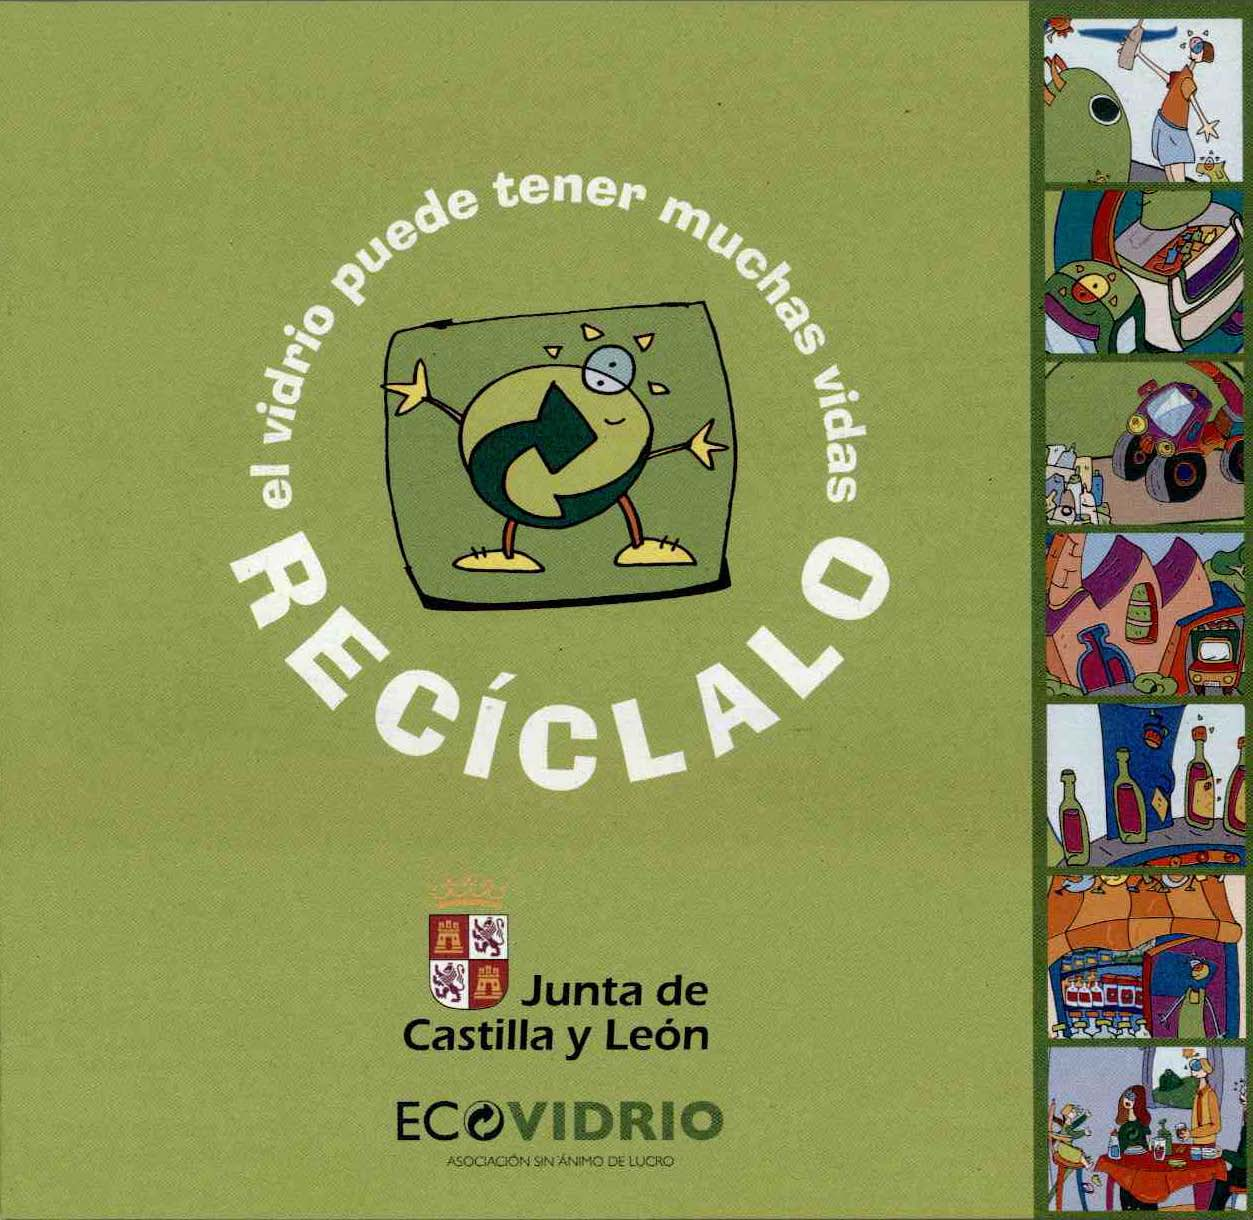 folleto ecovidrio